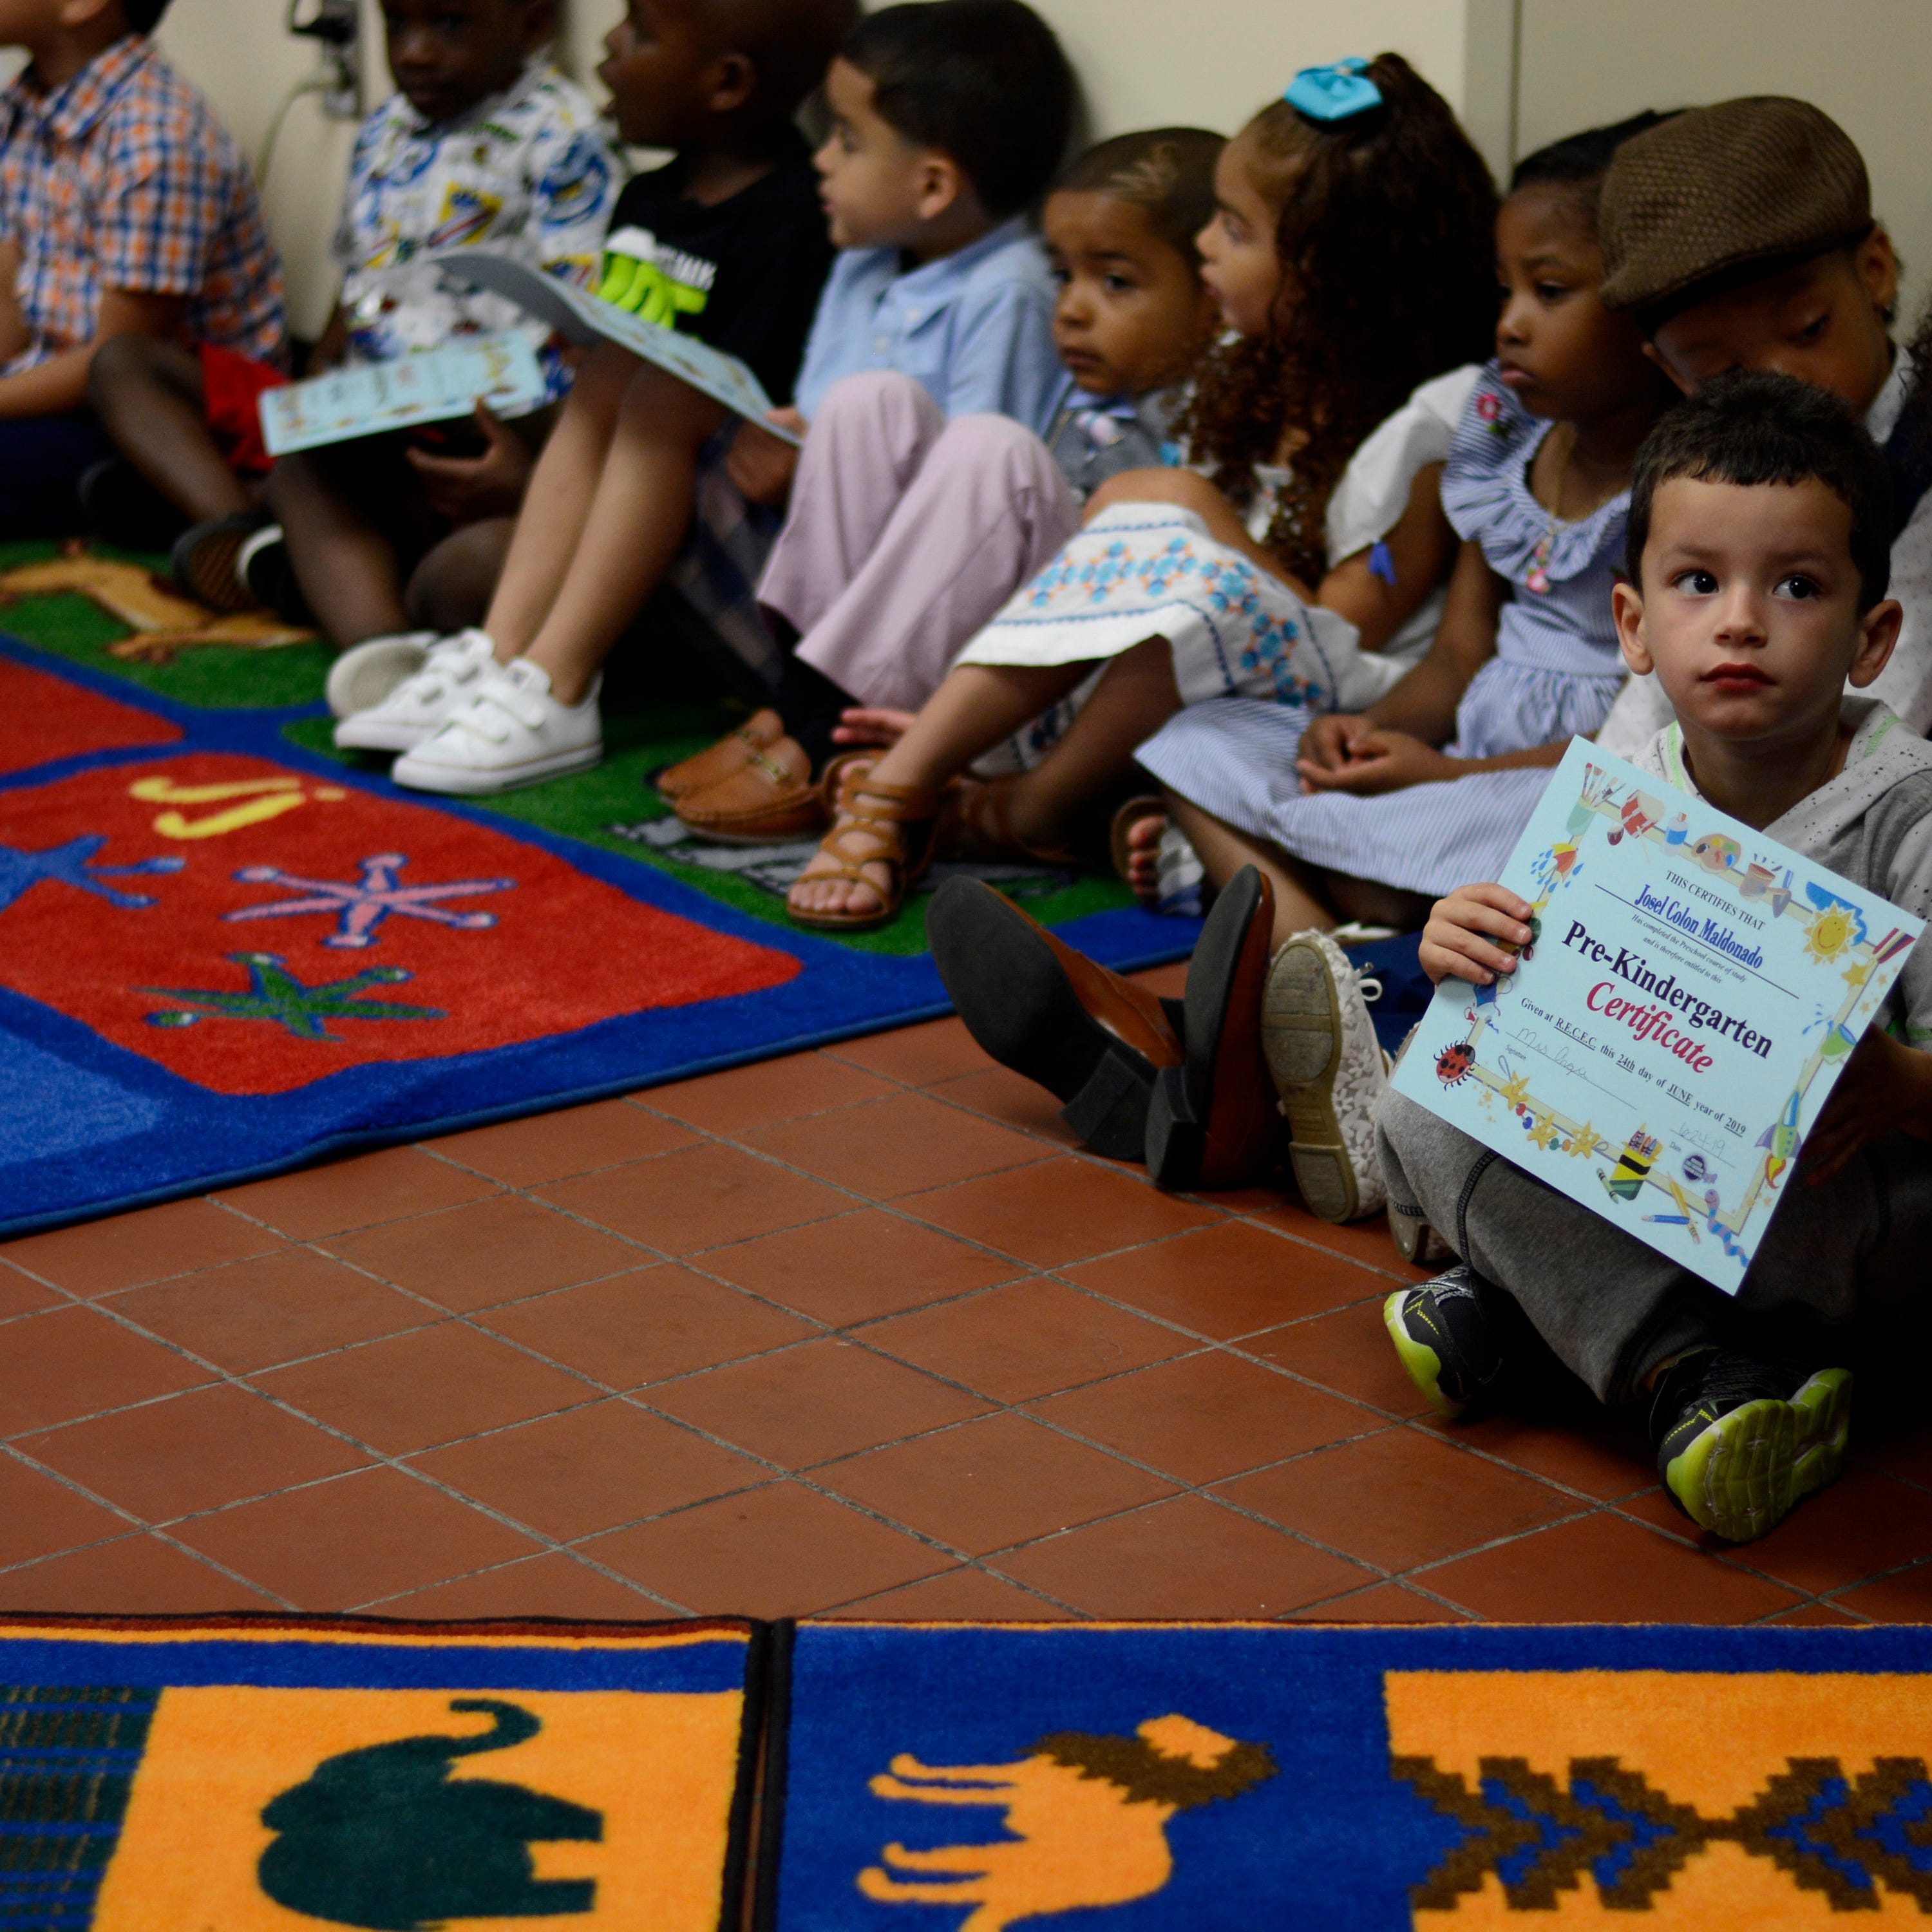 Josel Colon Maldonado sits with his pre-kindergarten class after the group performed a song for their families.